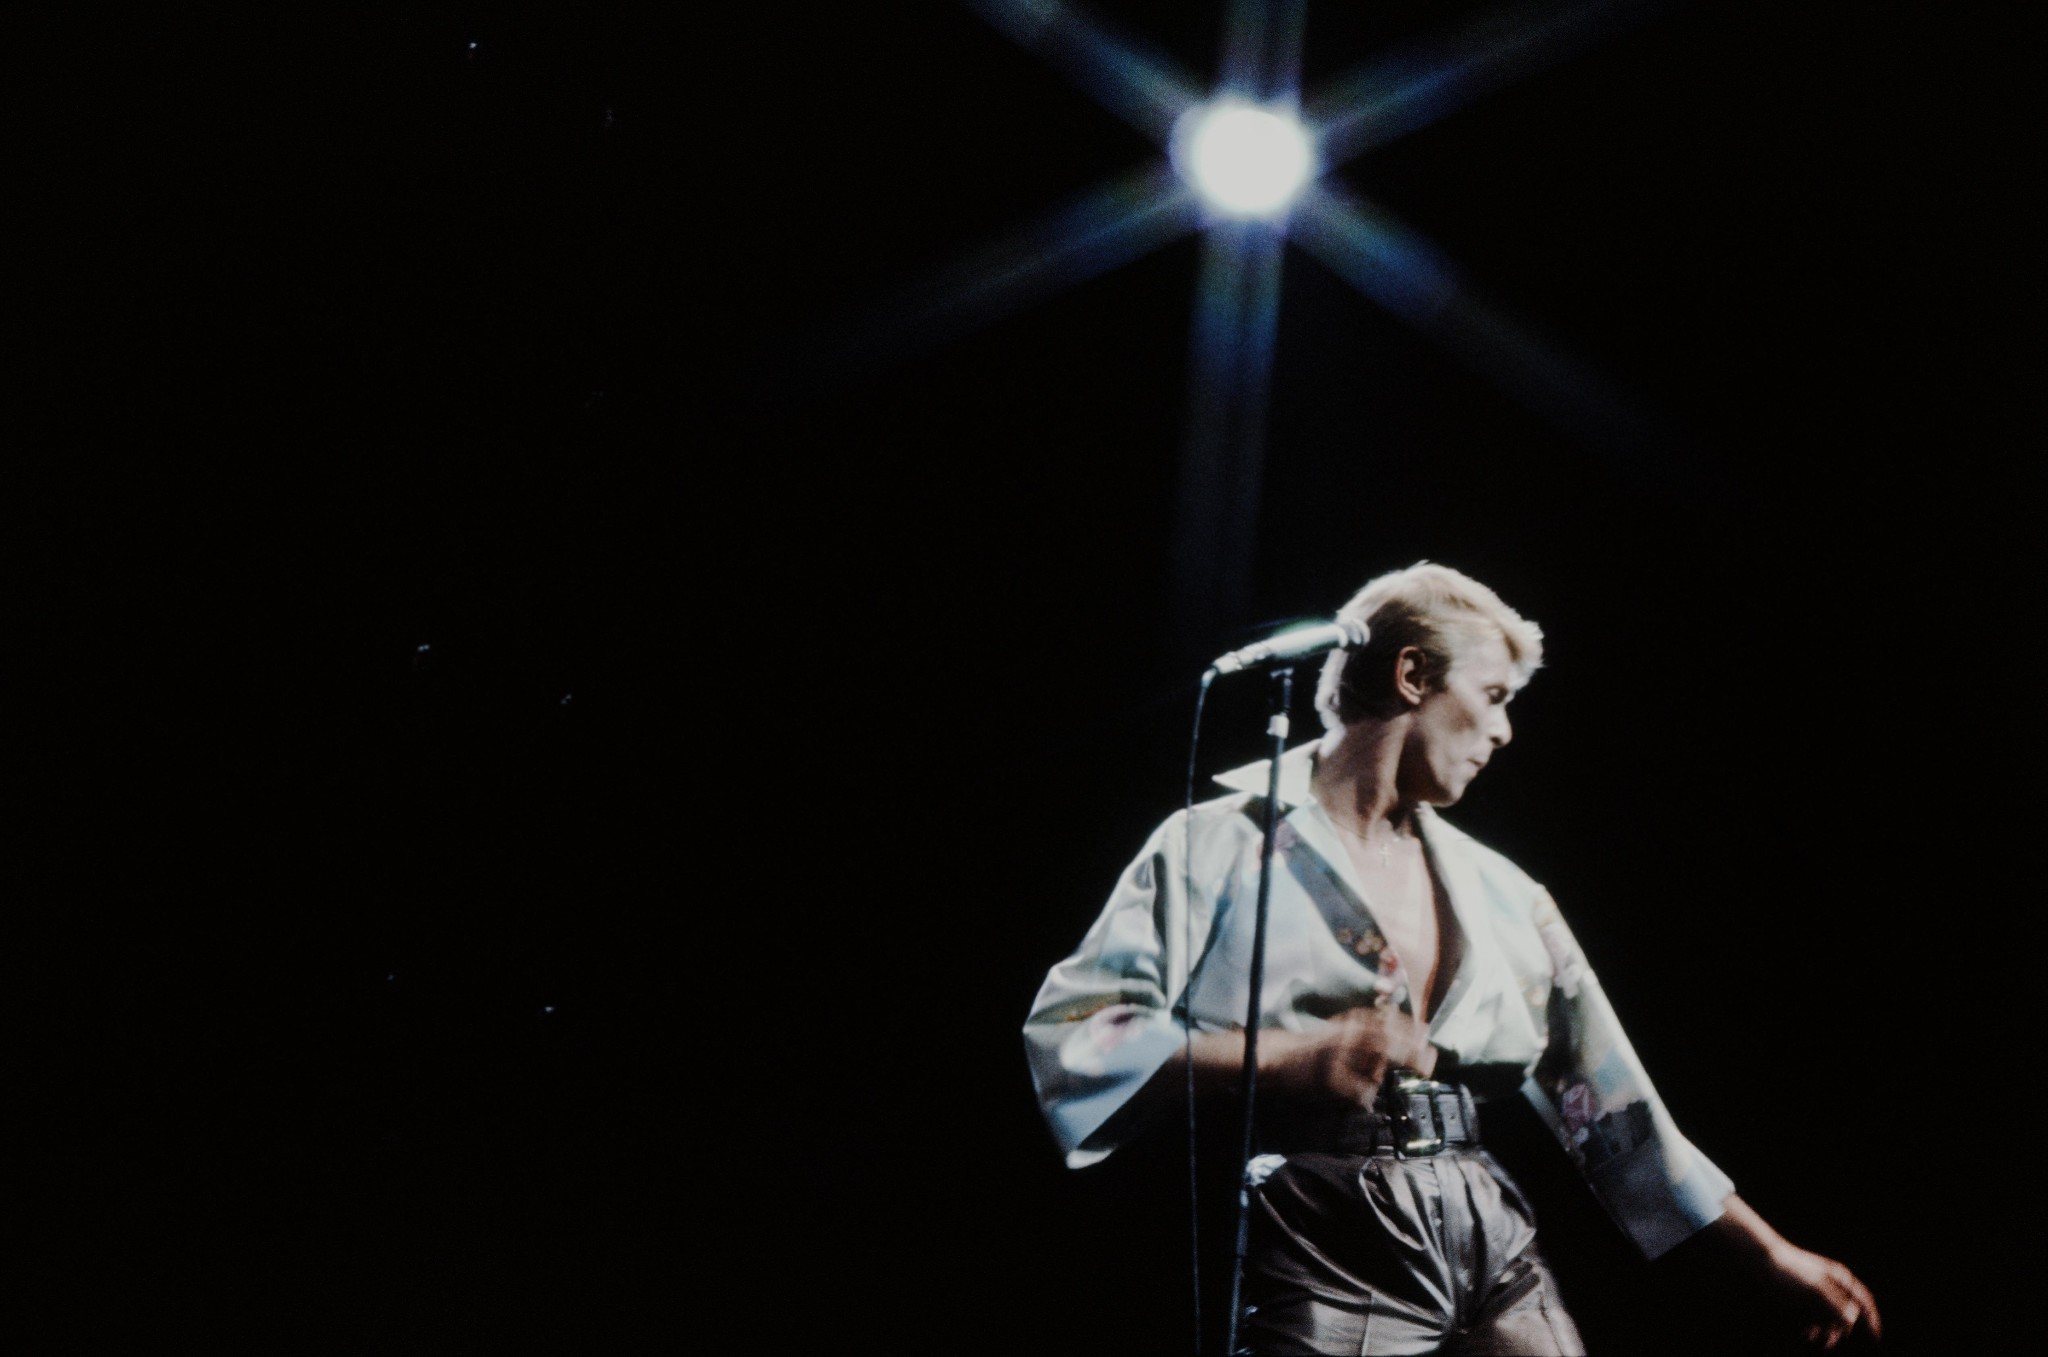 David Bowie's life and career – in pictures